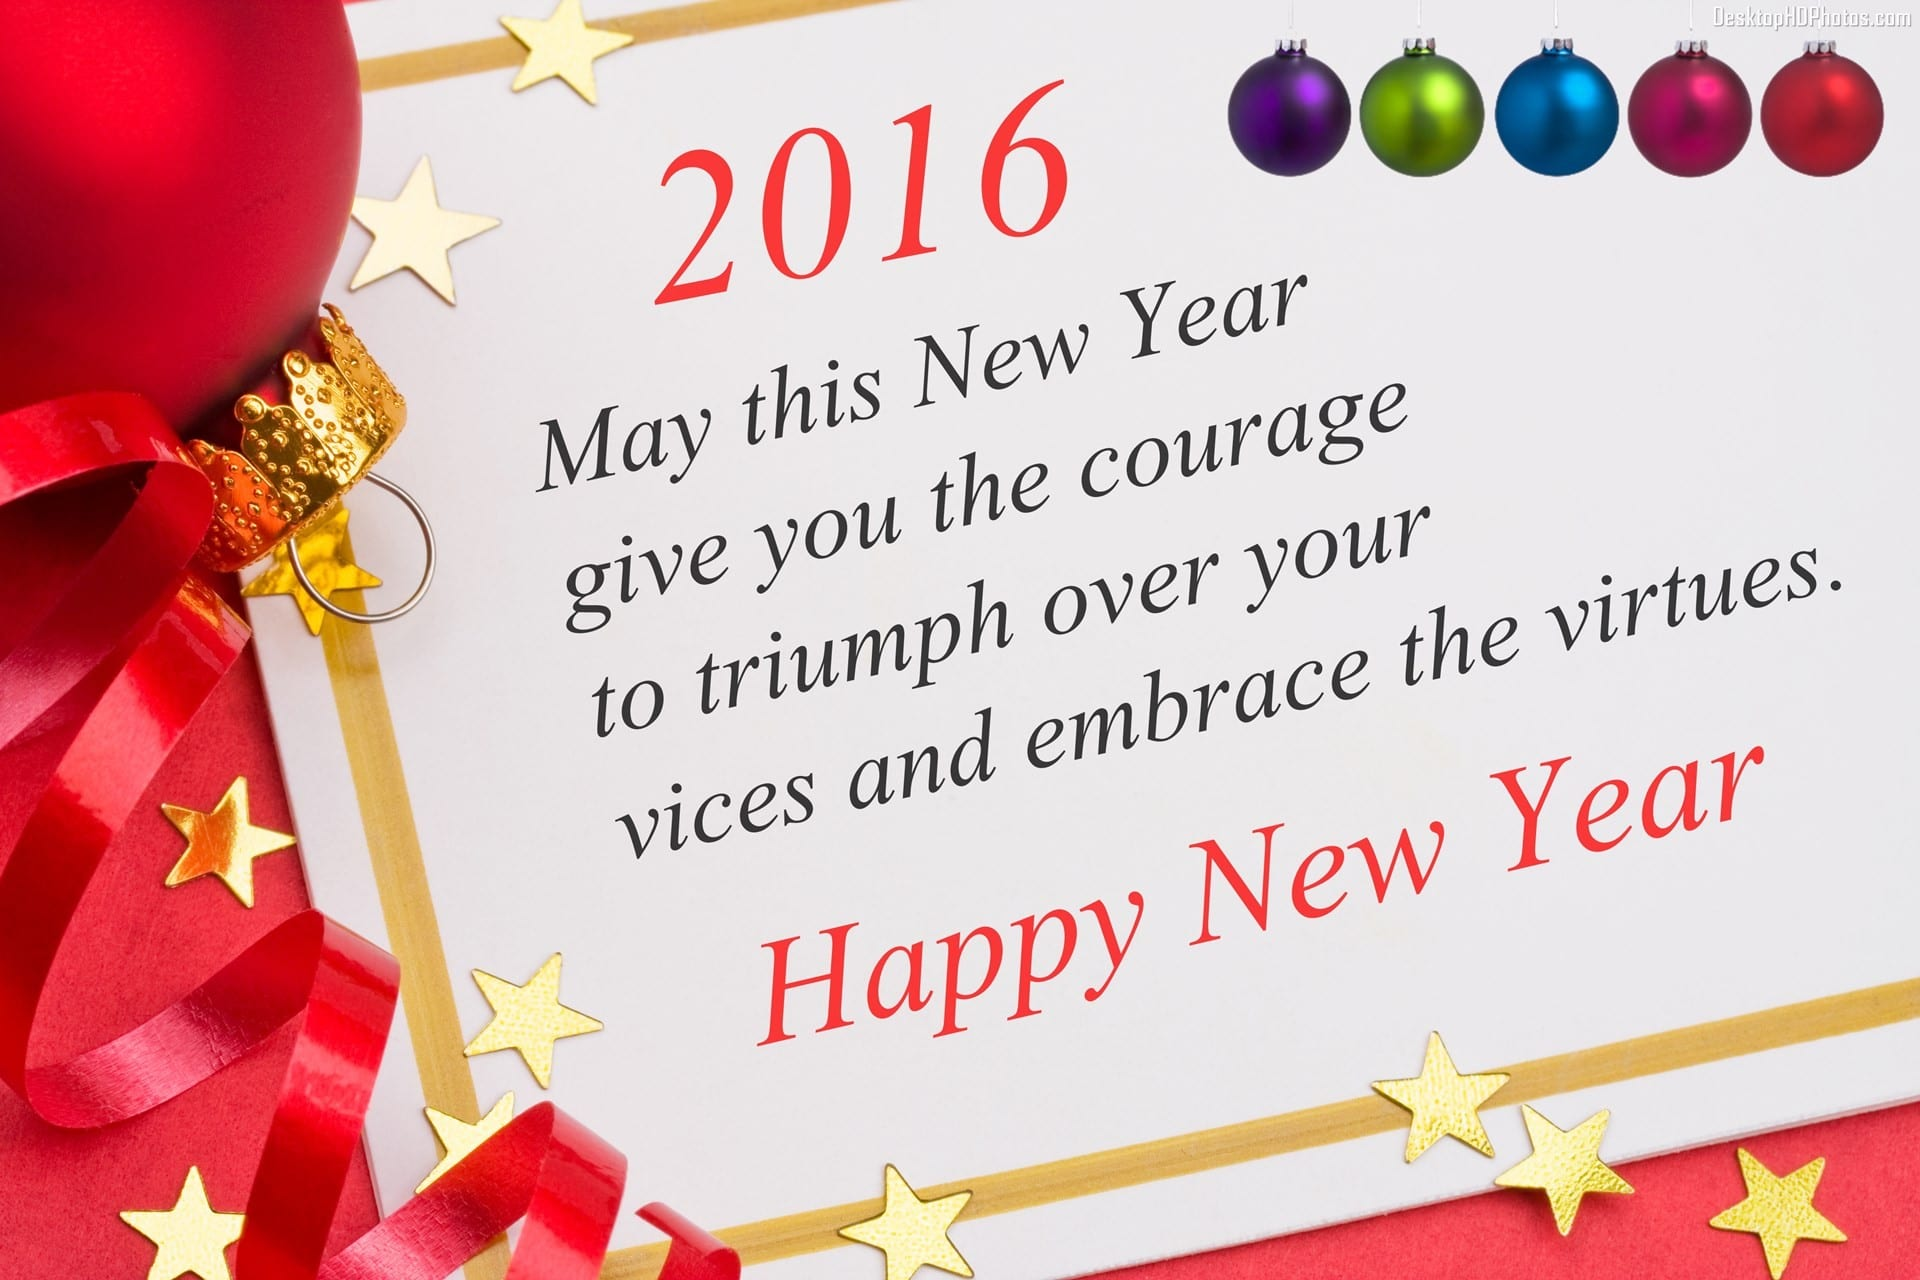 Happy-New-Year-Quotes-2016-for-Mom